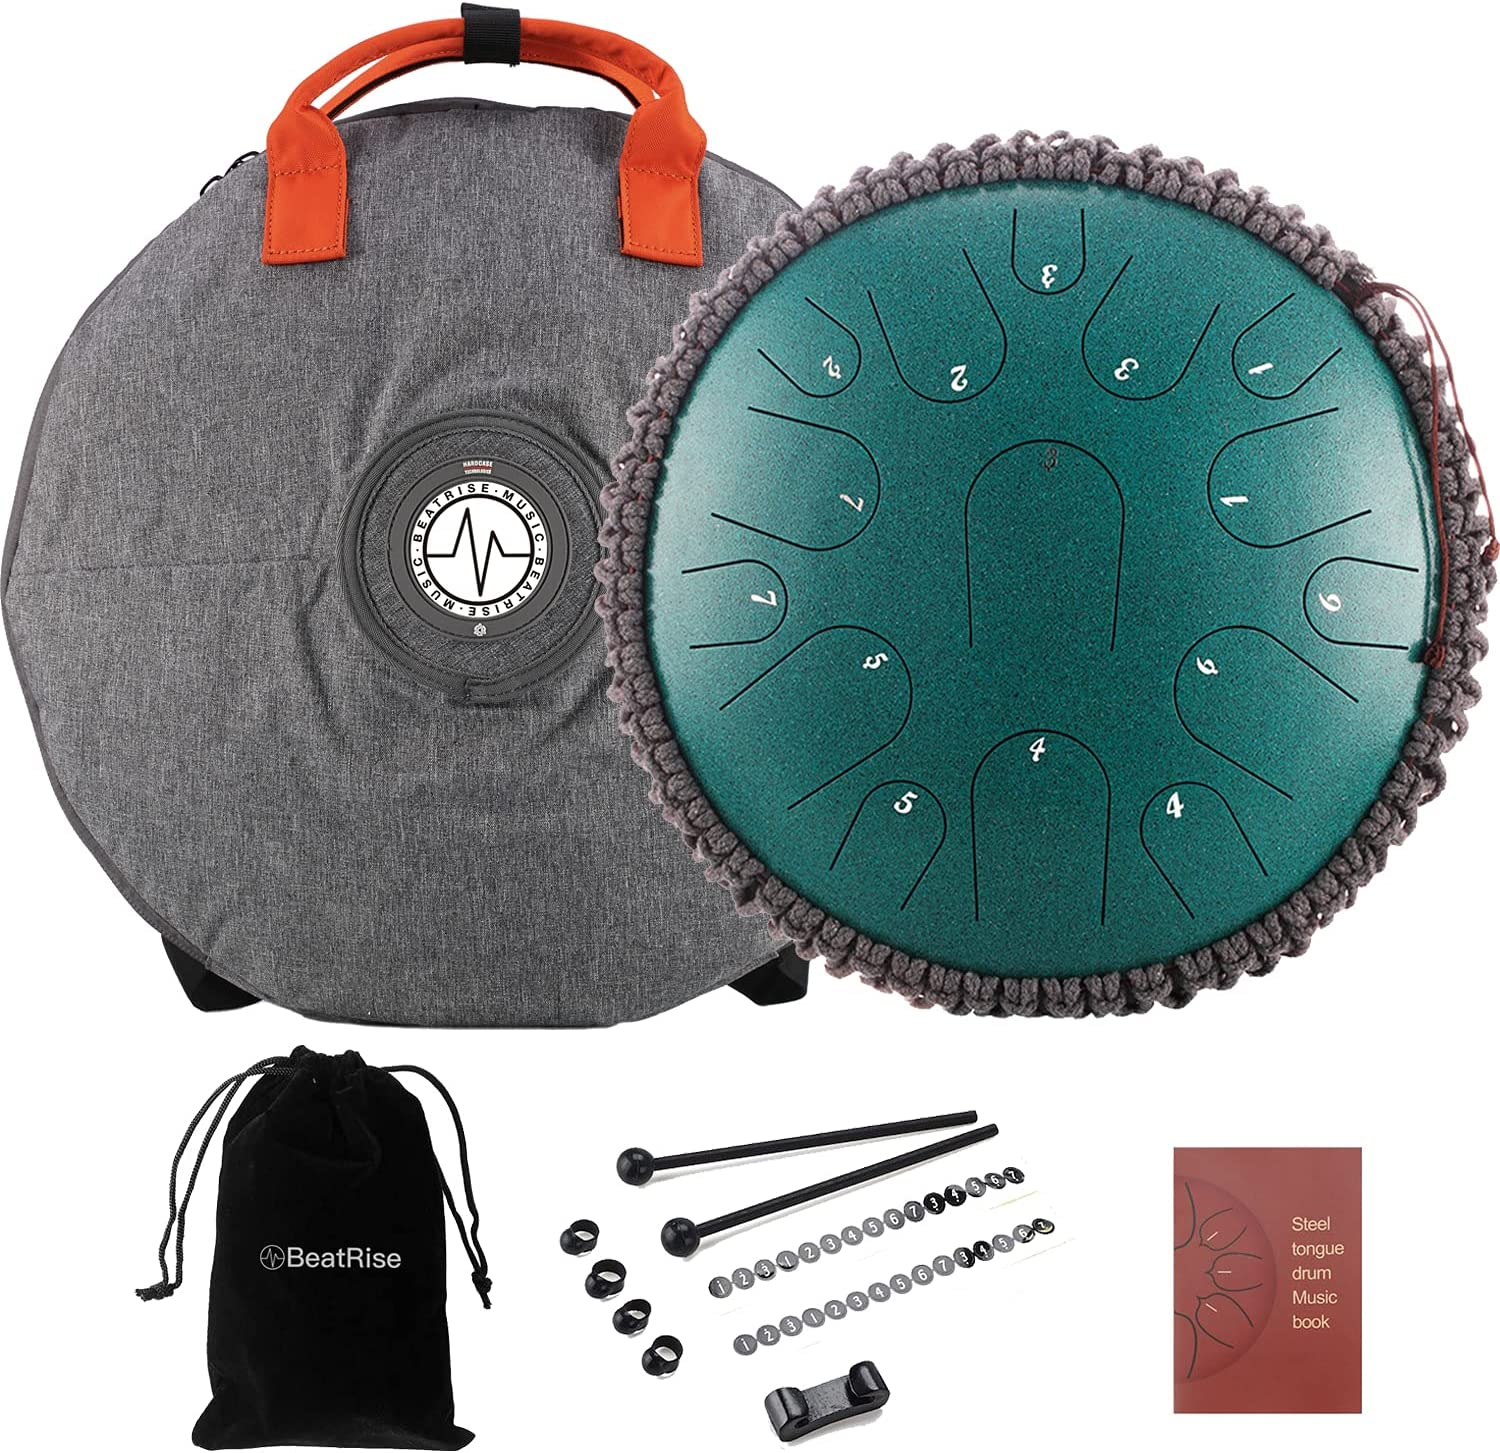 Challenge the lowest price of Japan ☆ BeatRise Tongue Drum 13 Inch Professi Popular brand in the world 15 Notes Steel